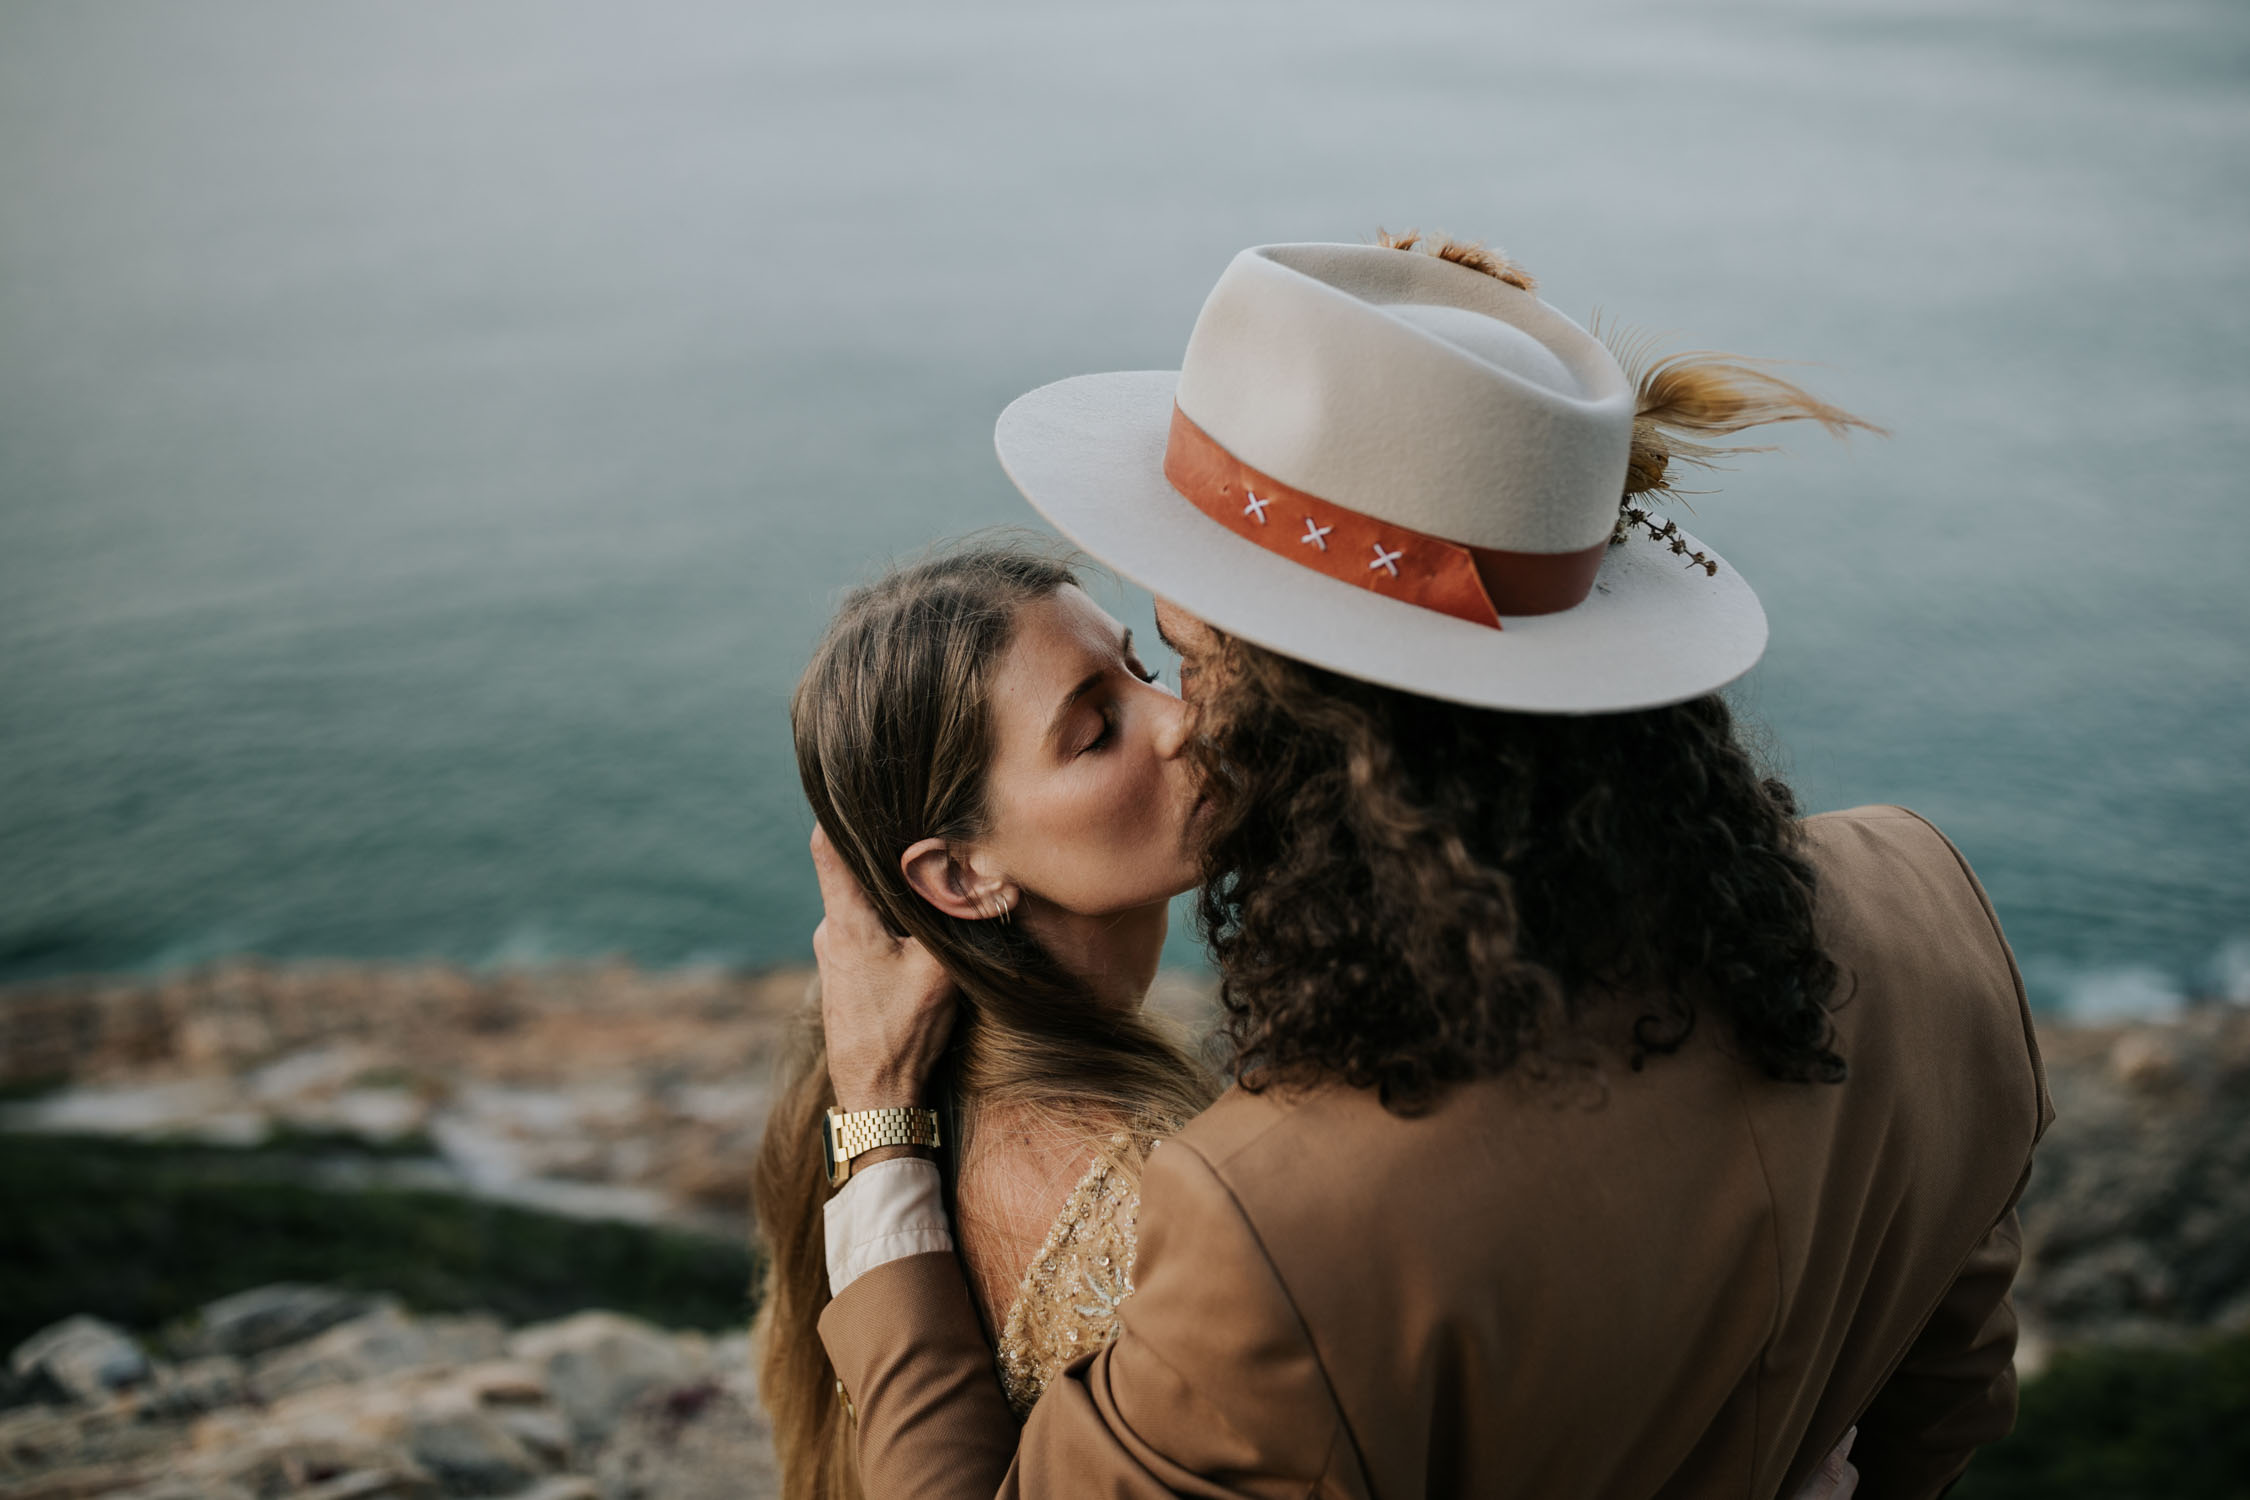 Groom wearing brown suite, beige shirt and felt hat kisses beautiful bride wearing gypsy wedding dress with flared long sleeves, sheer skirt and gold detailed top at the top on an ocean cliff